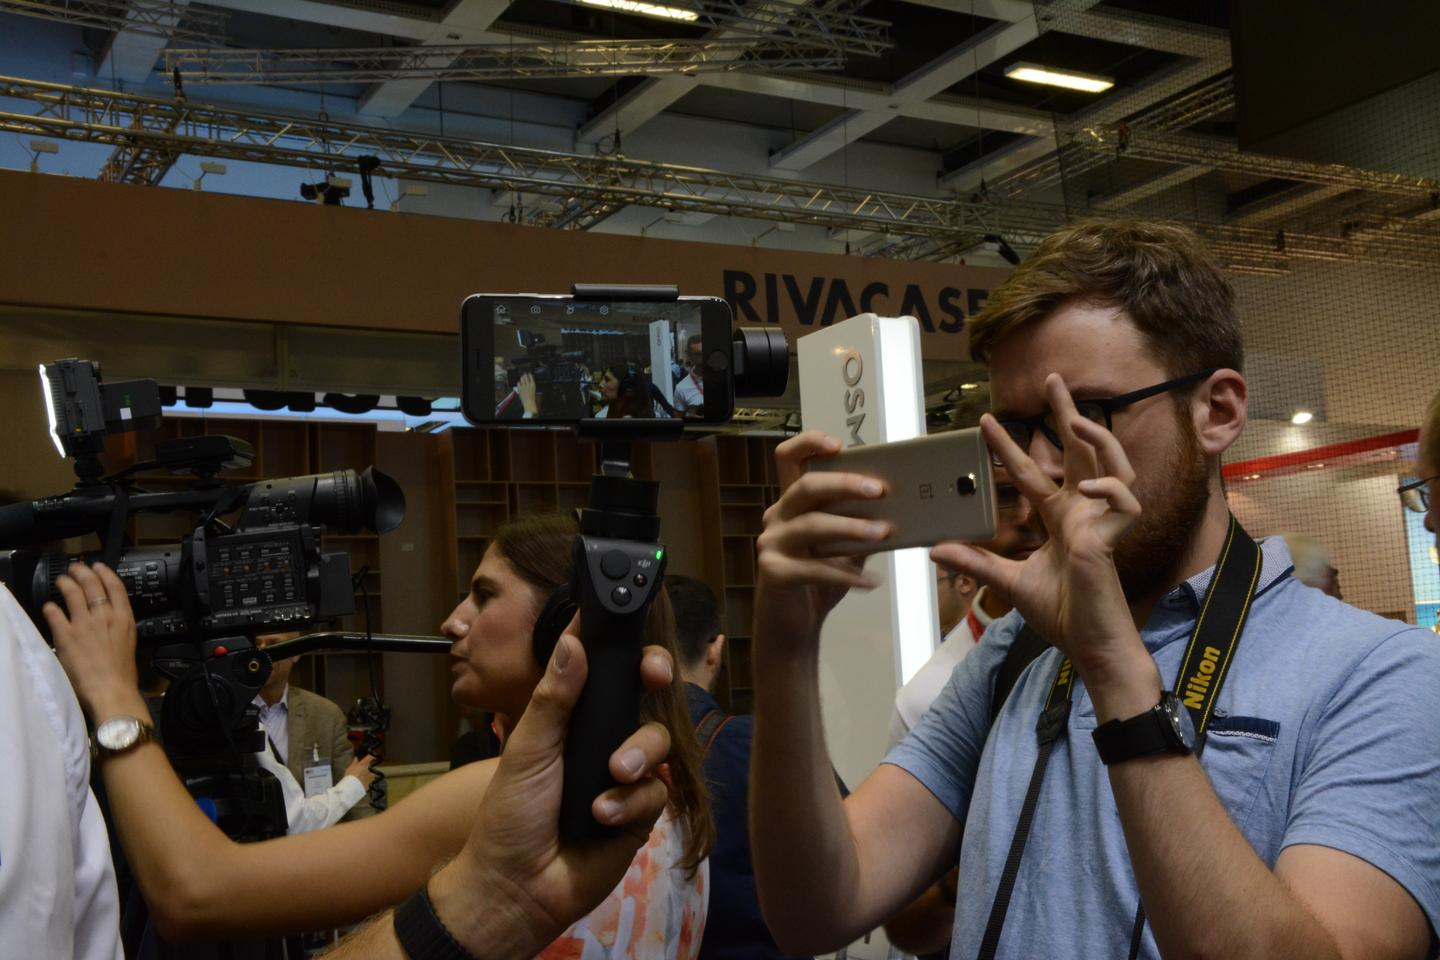 DJI's Osmo Mobile is unveiled at IFA 2016